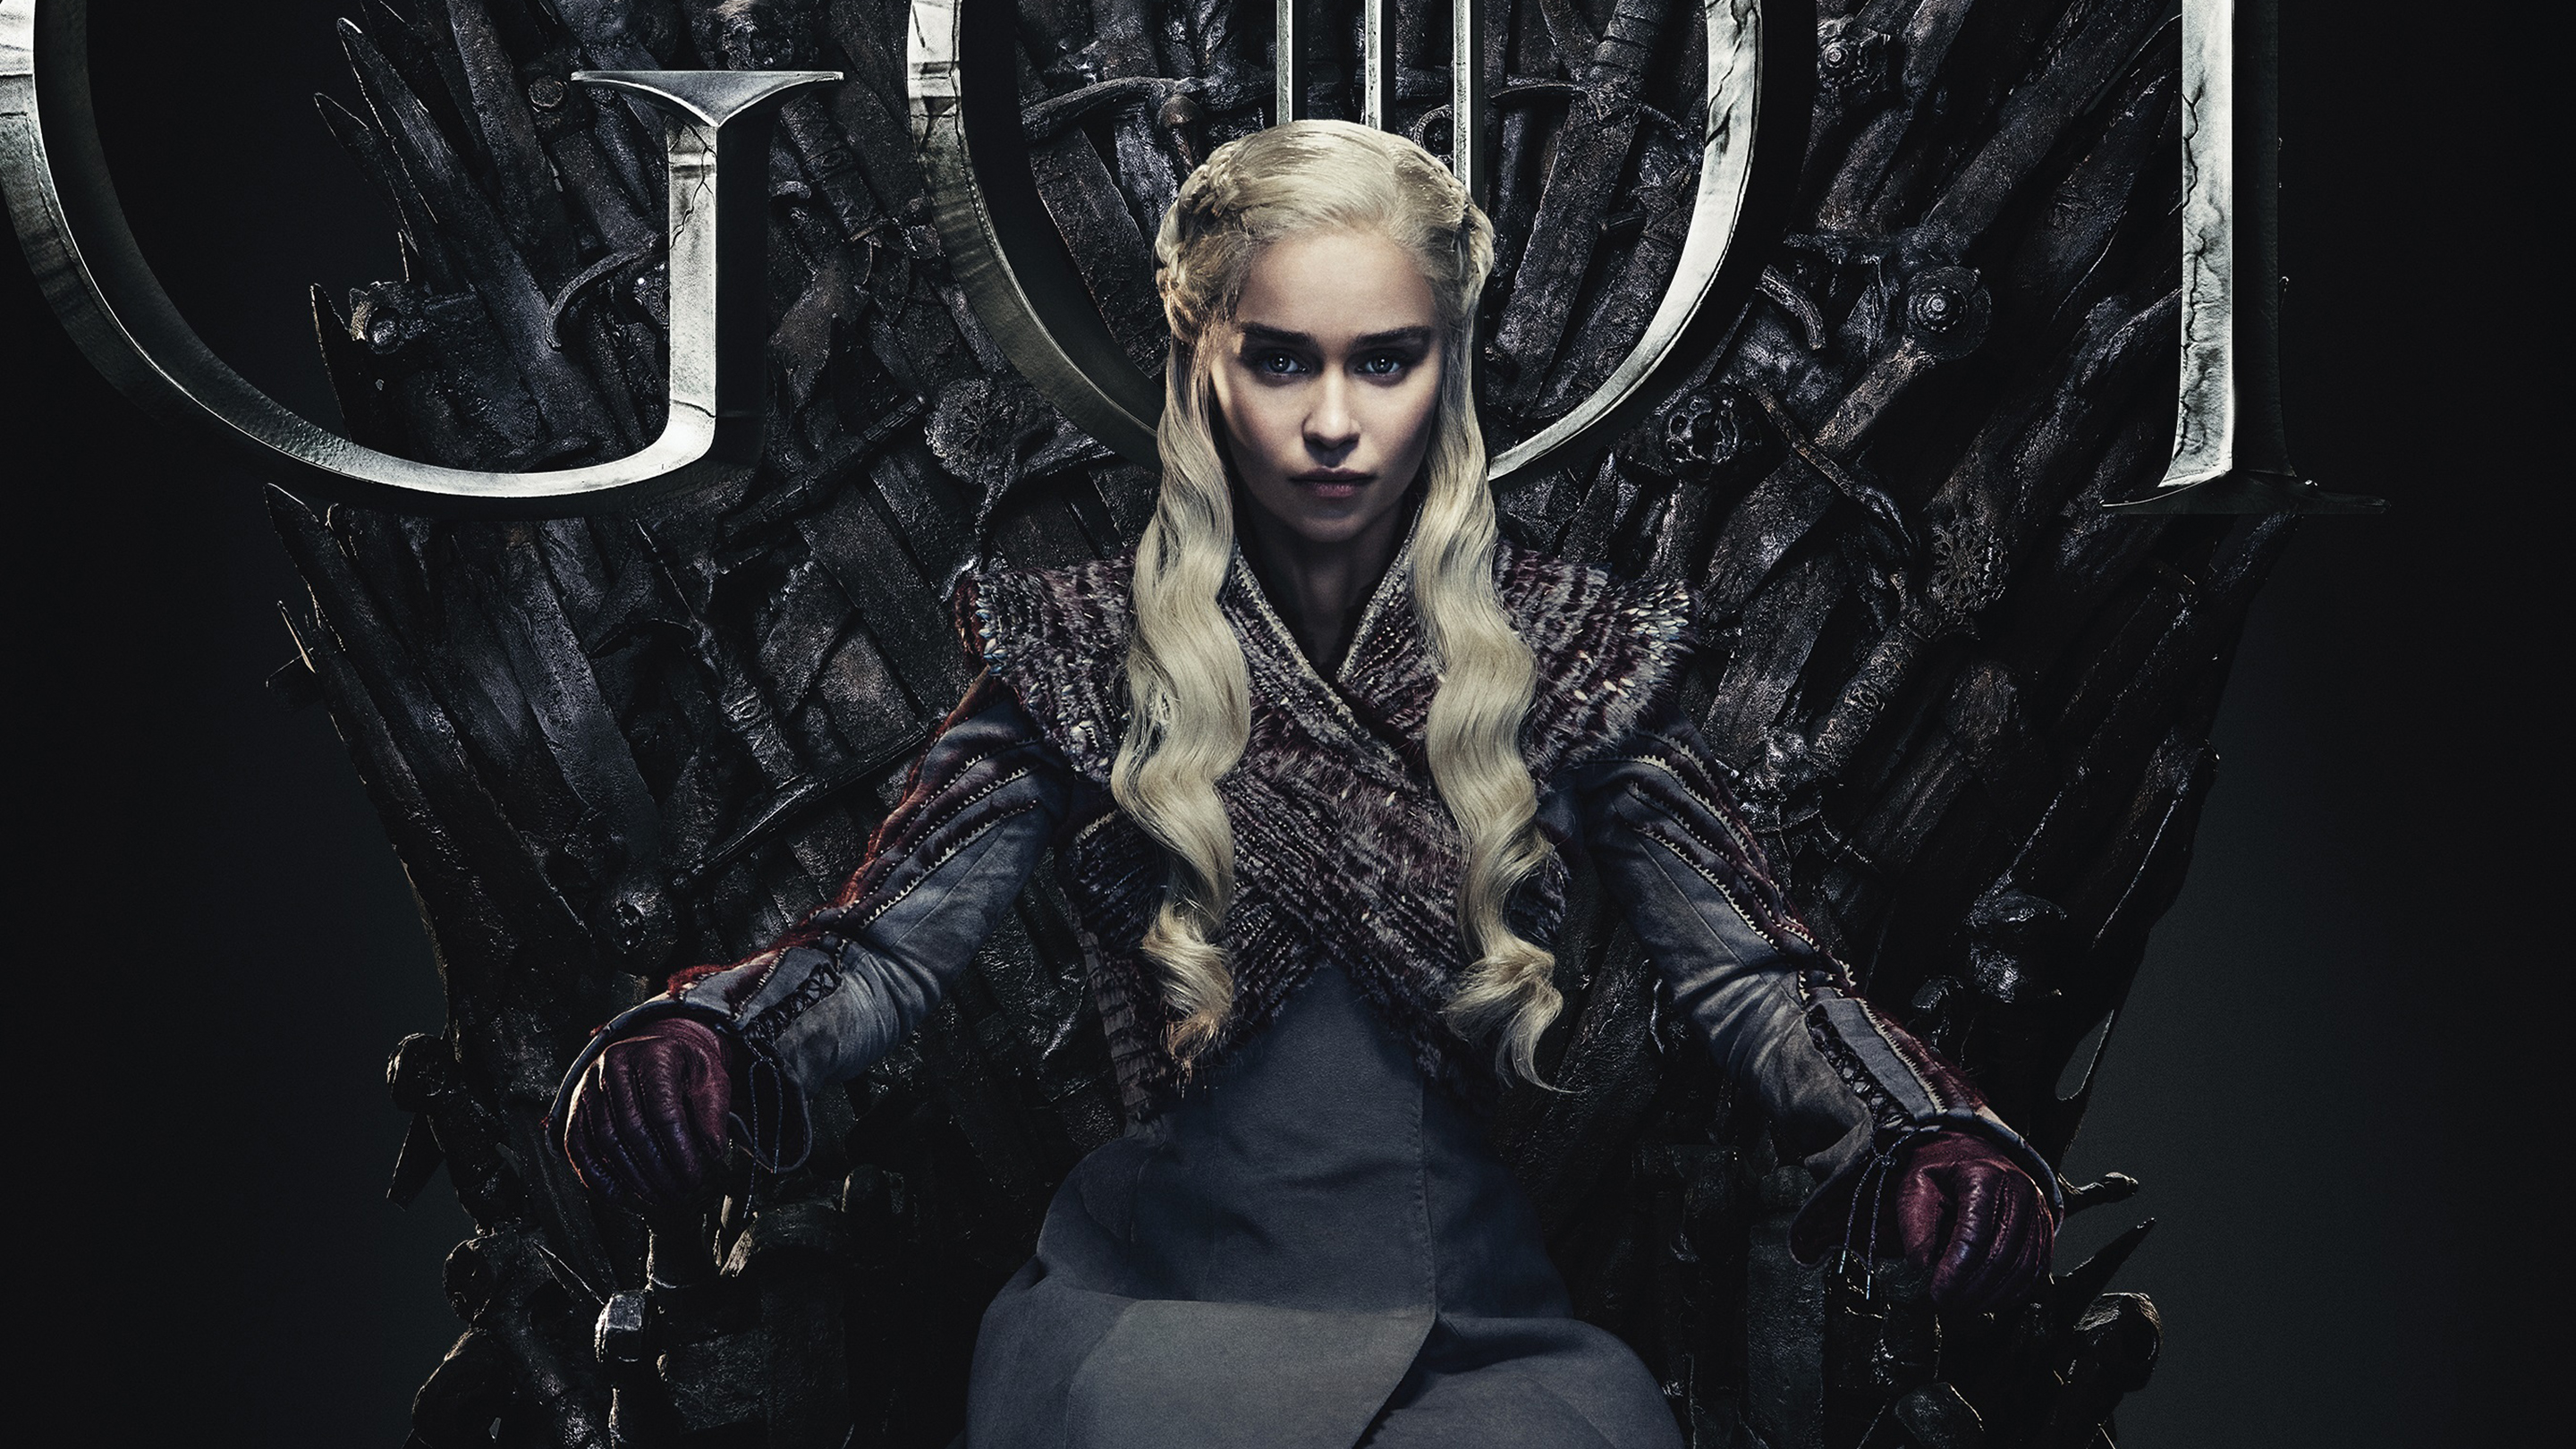 Emilia Clarke in Game of Thrones Final Season 8 2019 Wallpapers 2880x1620